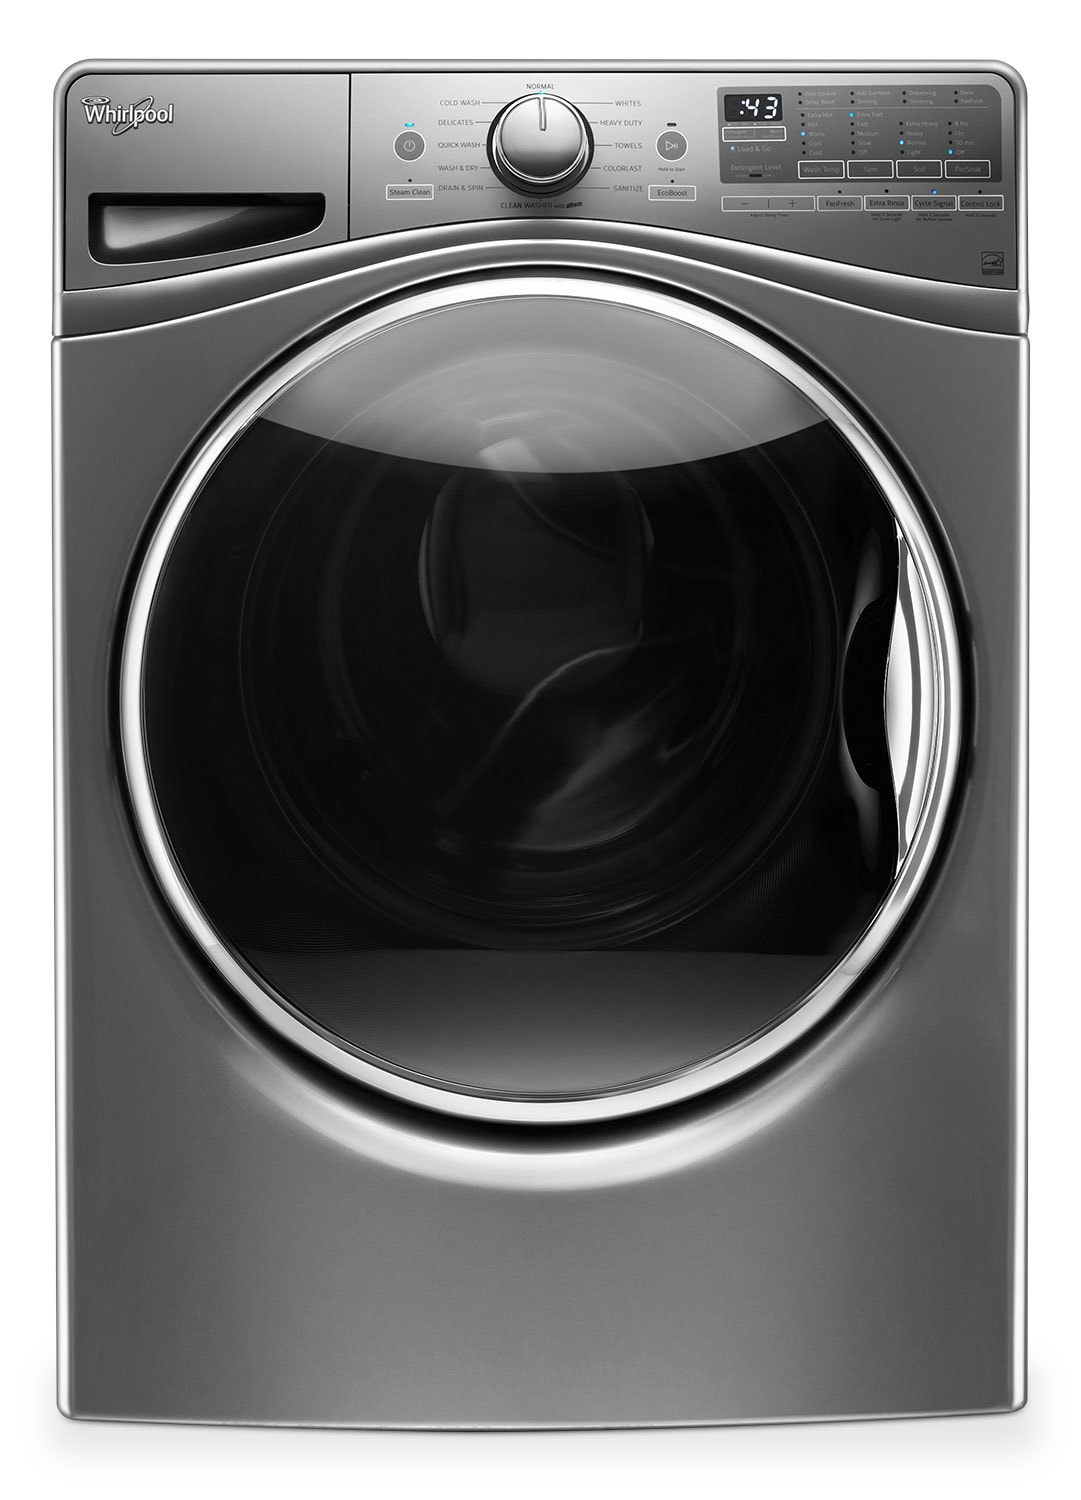 Washers and Dryers - Whirlpool Chrome Shadow Front-Load Washer (5.2 Cu. Ft. IEC) - WFW92HEFC